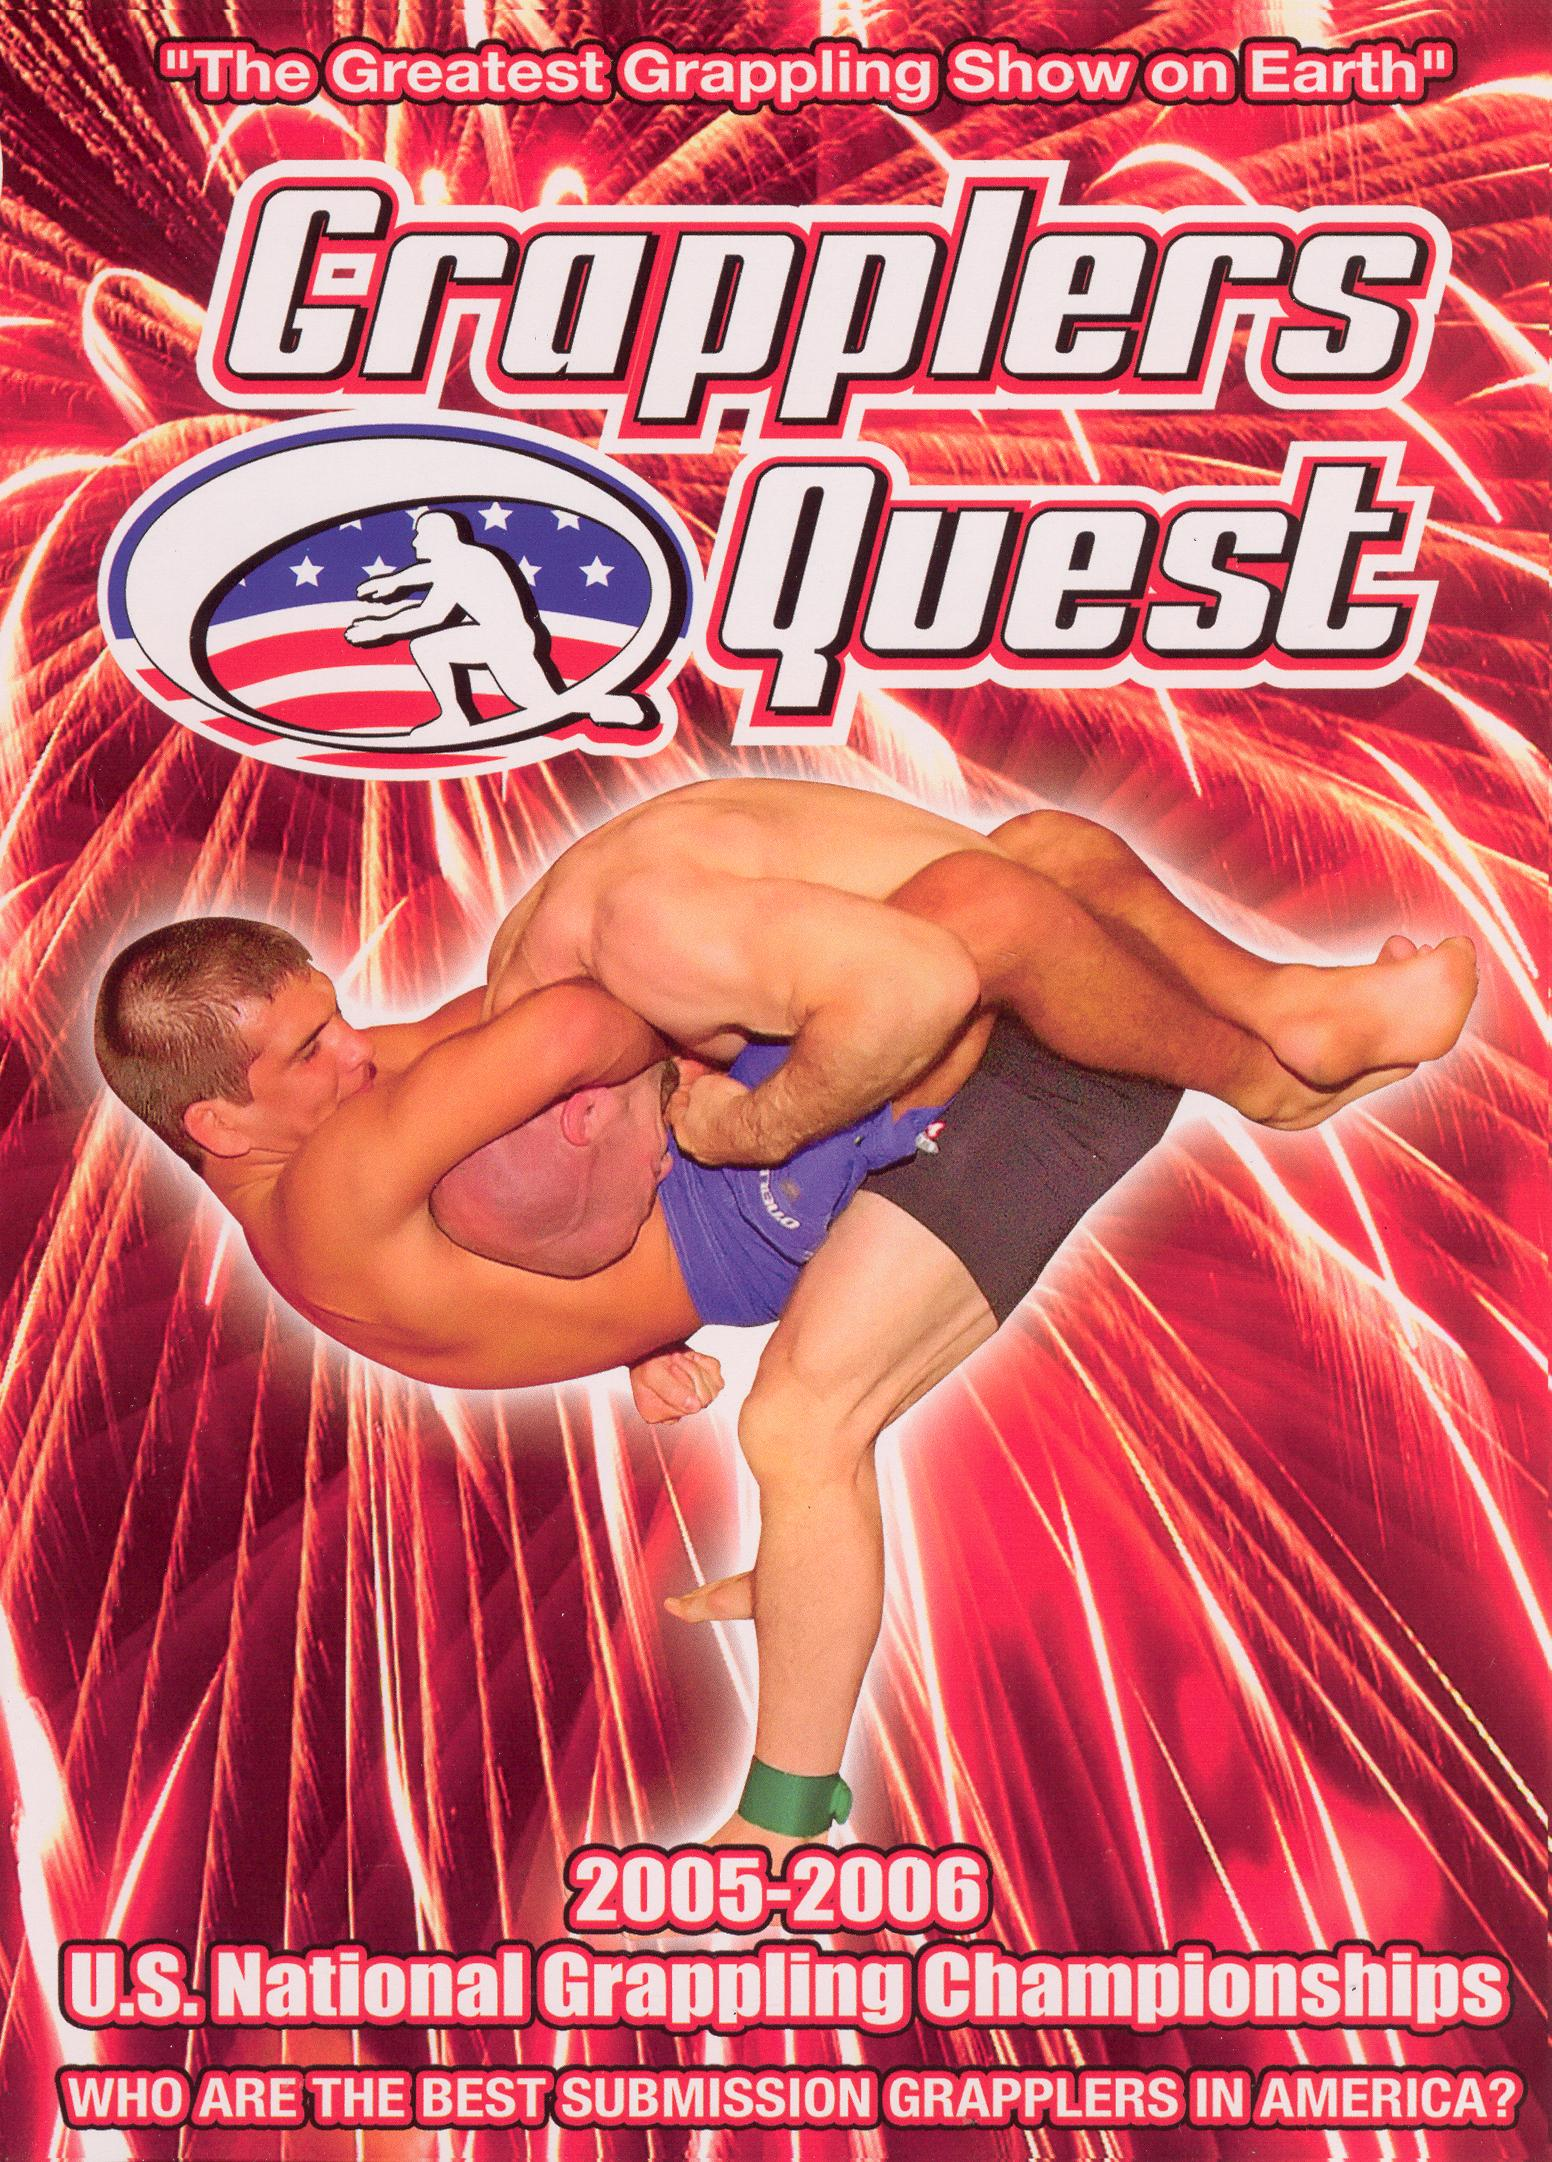 Grapplers Quest: 2005-2006 U.S. National Grappling Championships